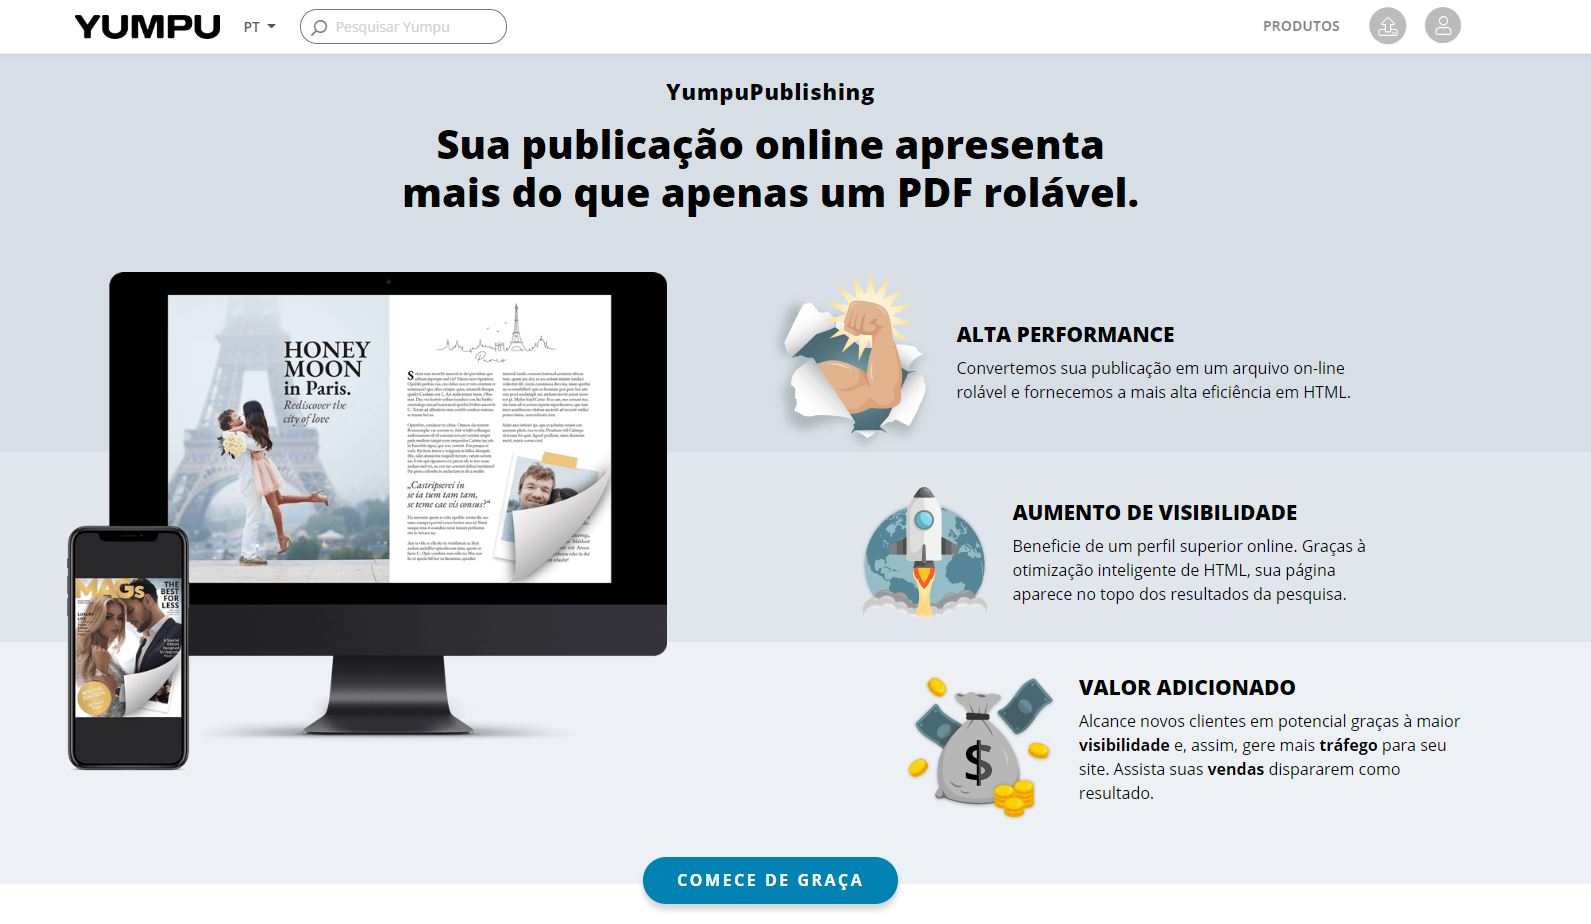 O site da YumpuPublishing